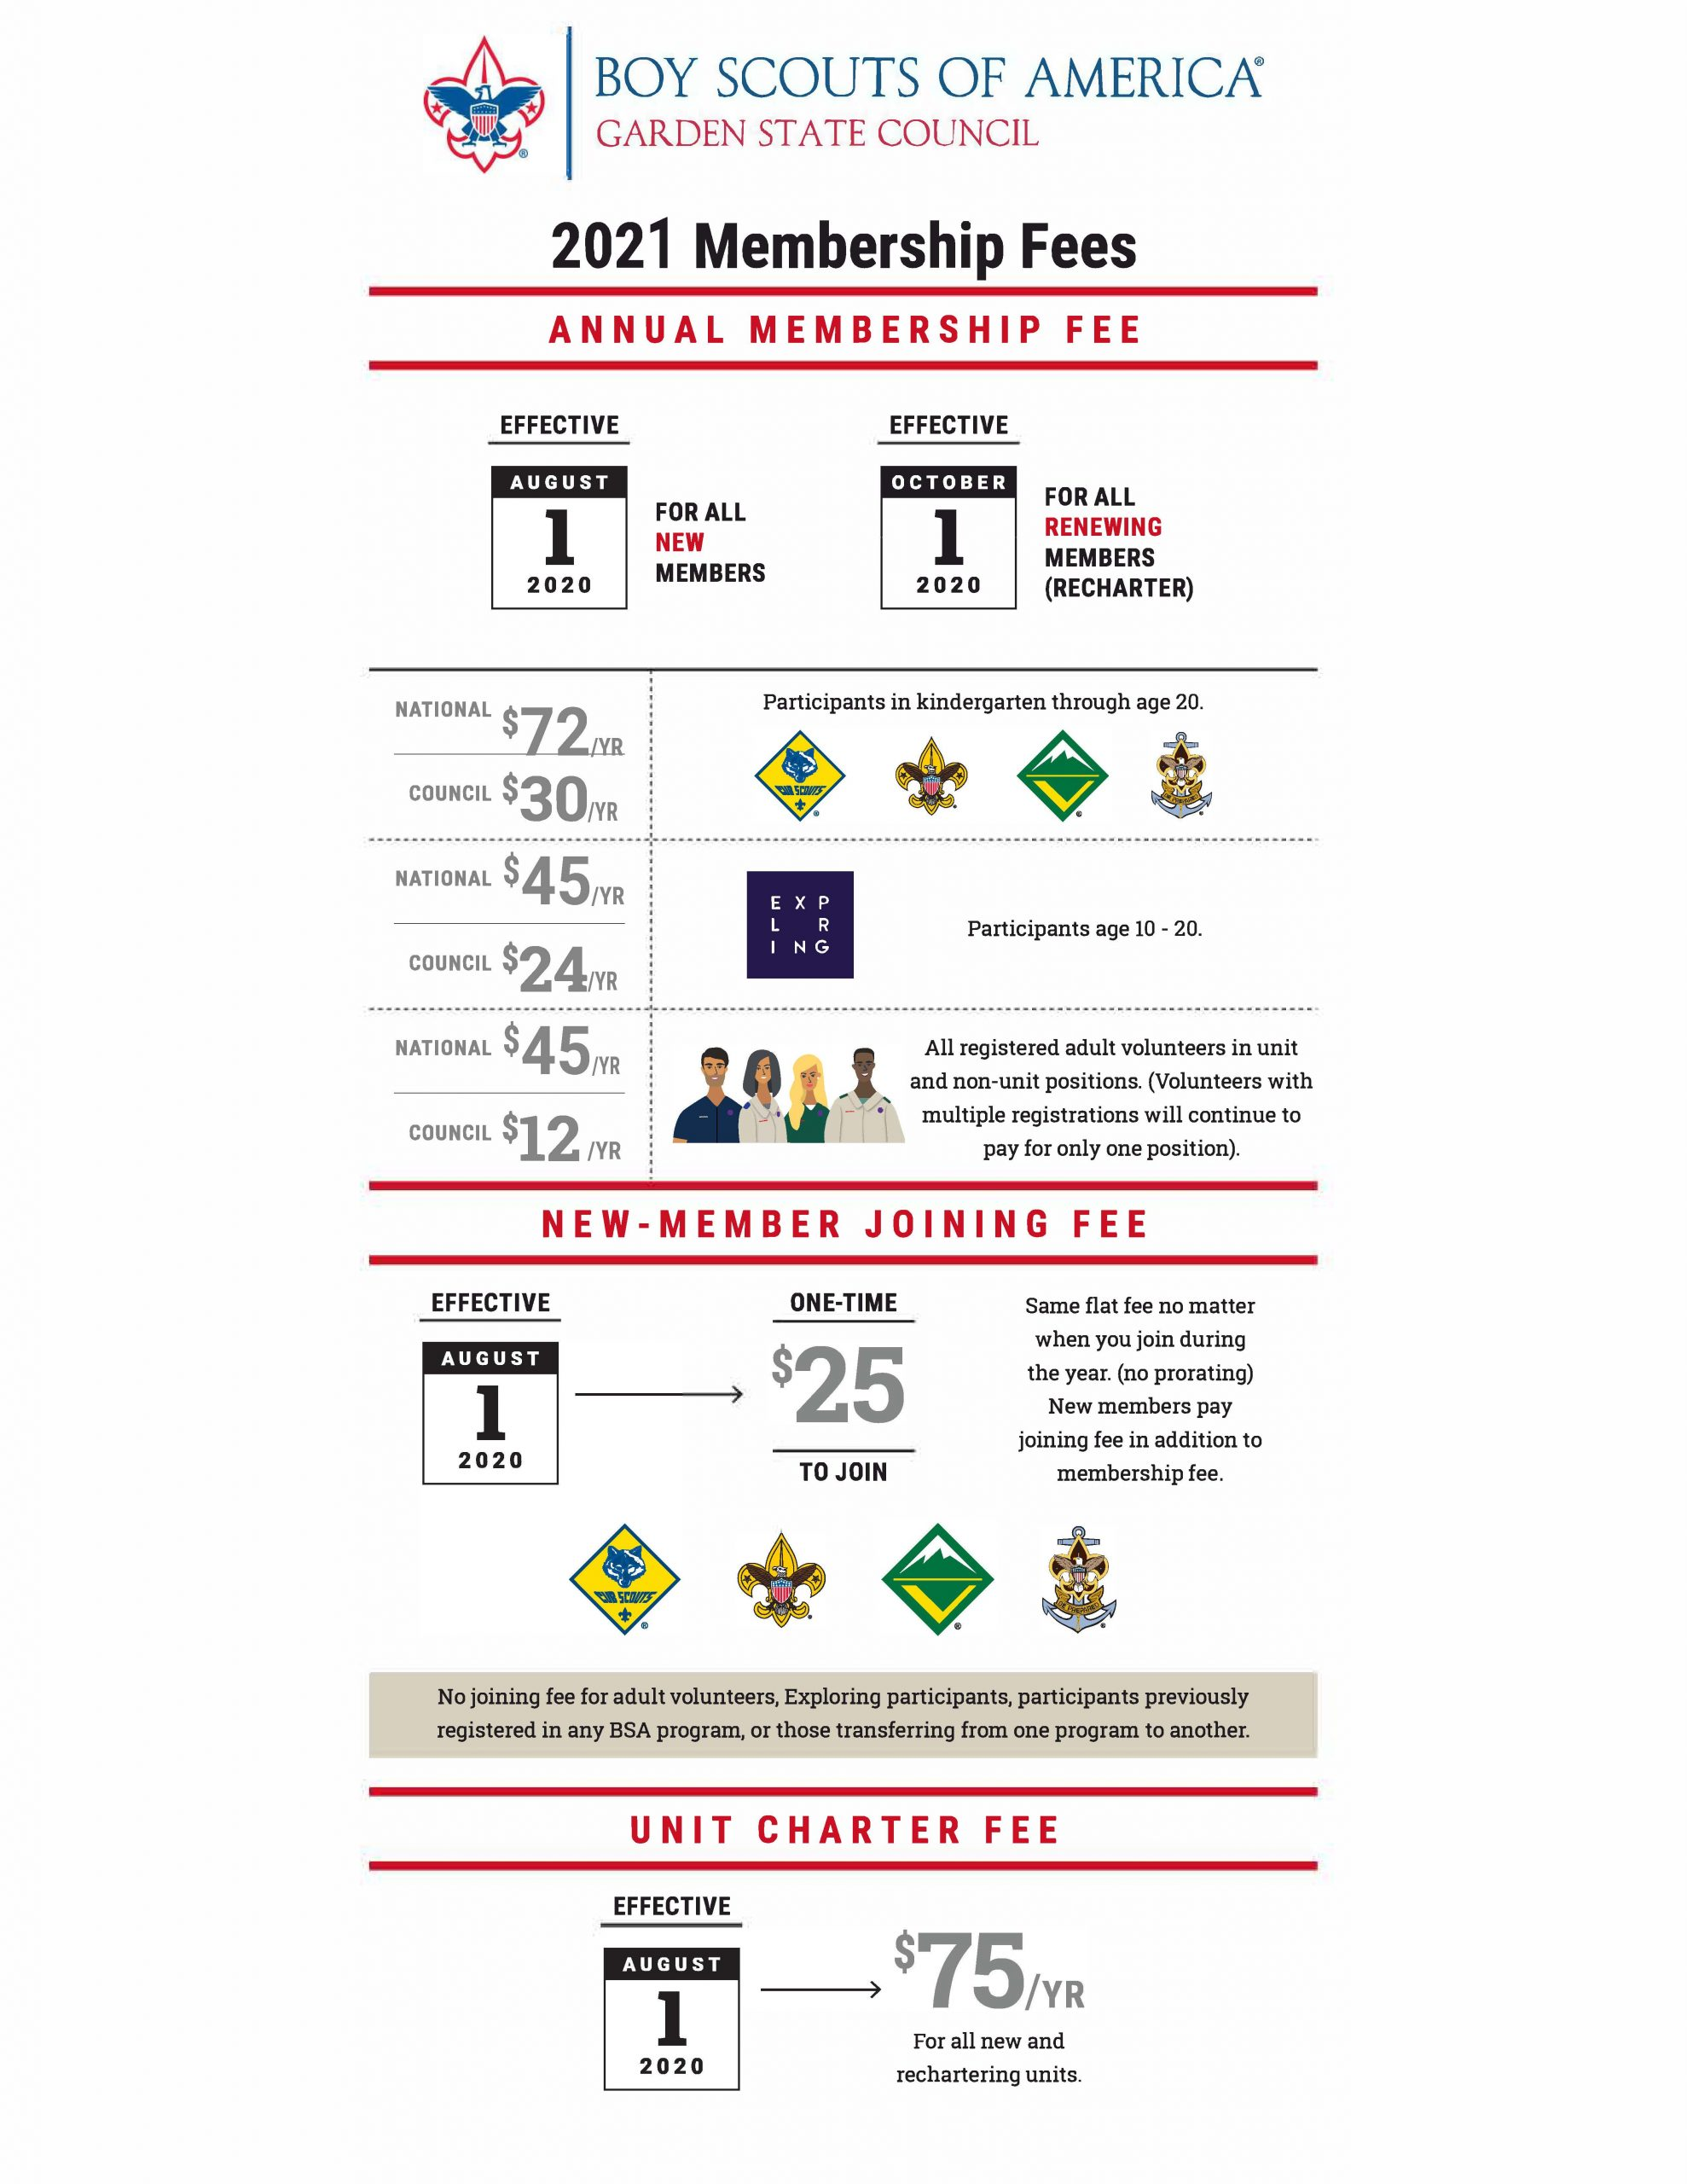 Infographic outlining the fee structure to join or renew membership in the different programs offered by the Boy Scouts of America